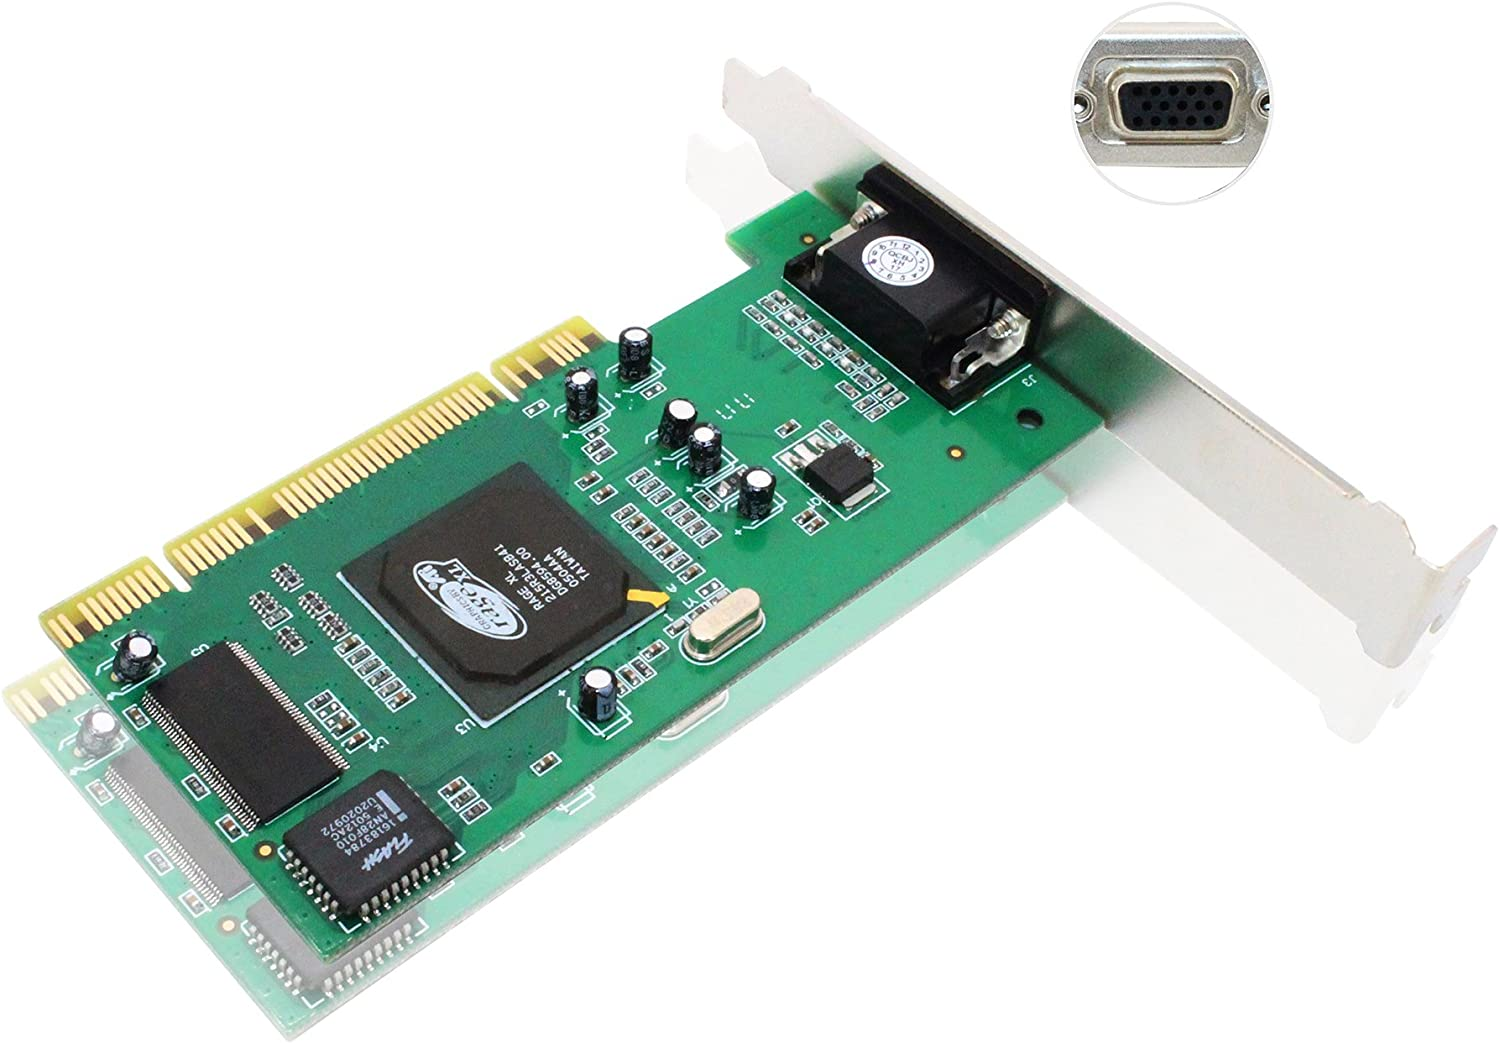 VGA Video Card, Tanbin ATI Rage XL 8MB PCI VGA Video Card CL-XL-B41